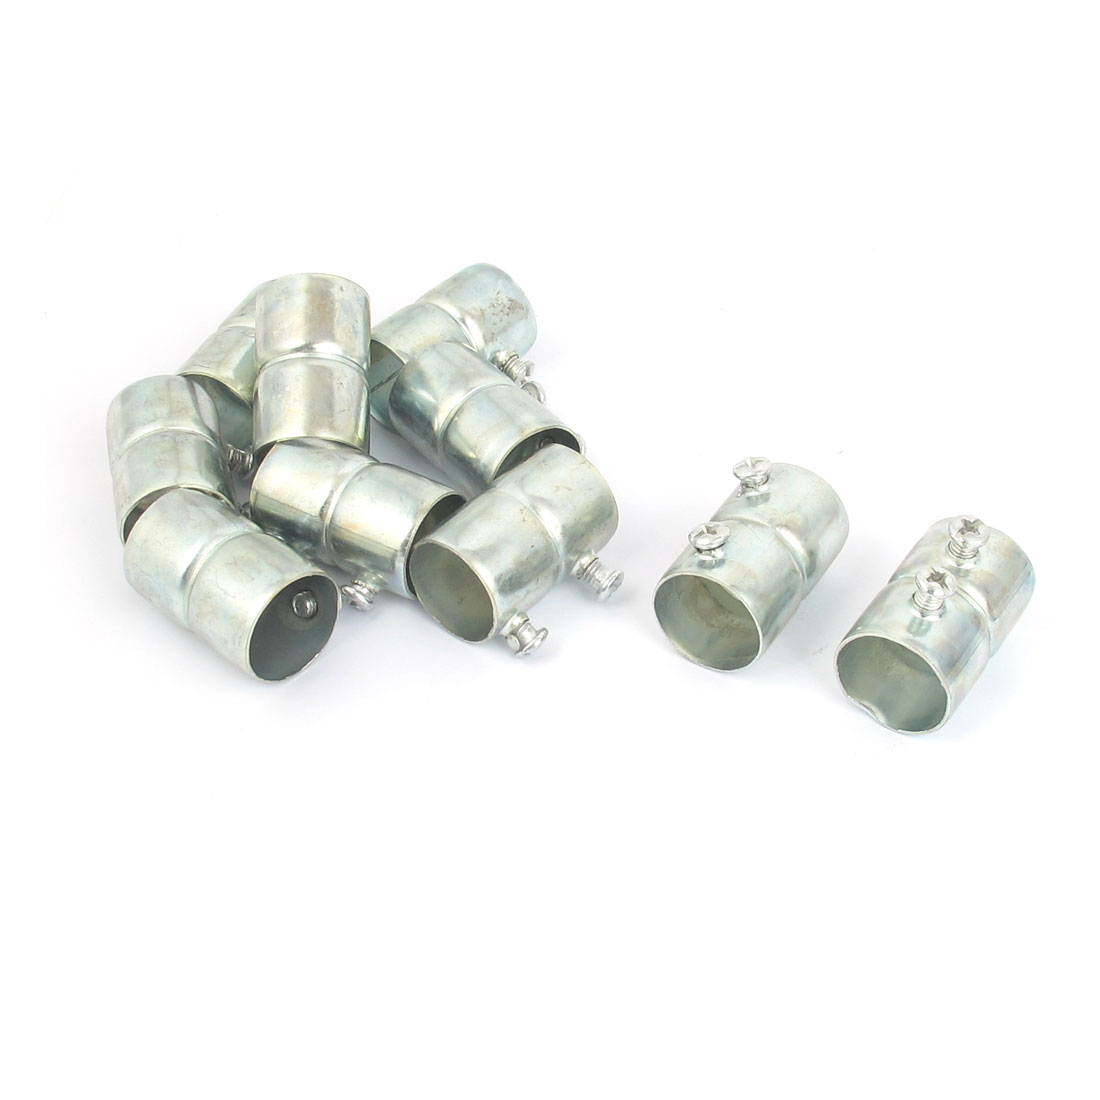 10pcs Silver Tone Metal 20mm Inner Diameter Electrical Wire Pipe Connector